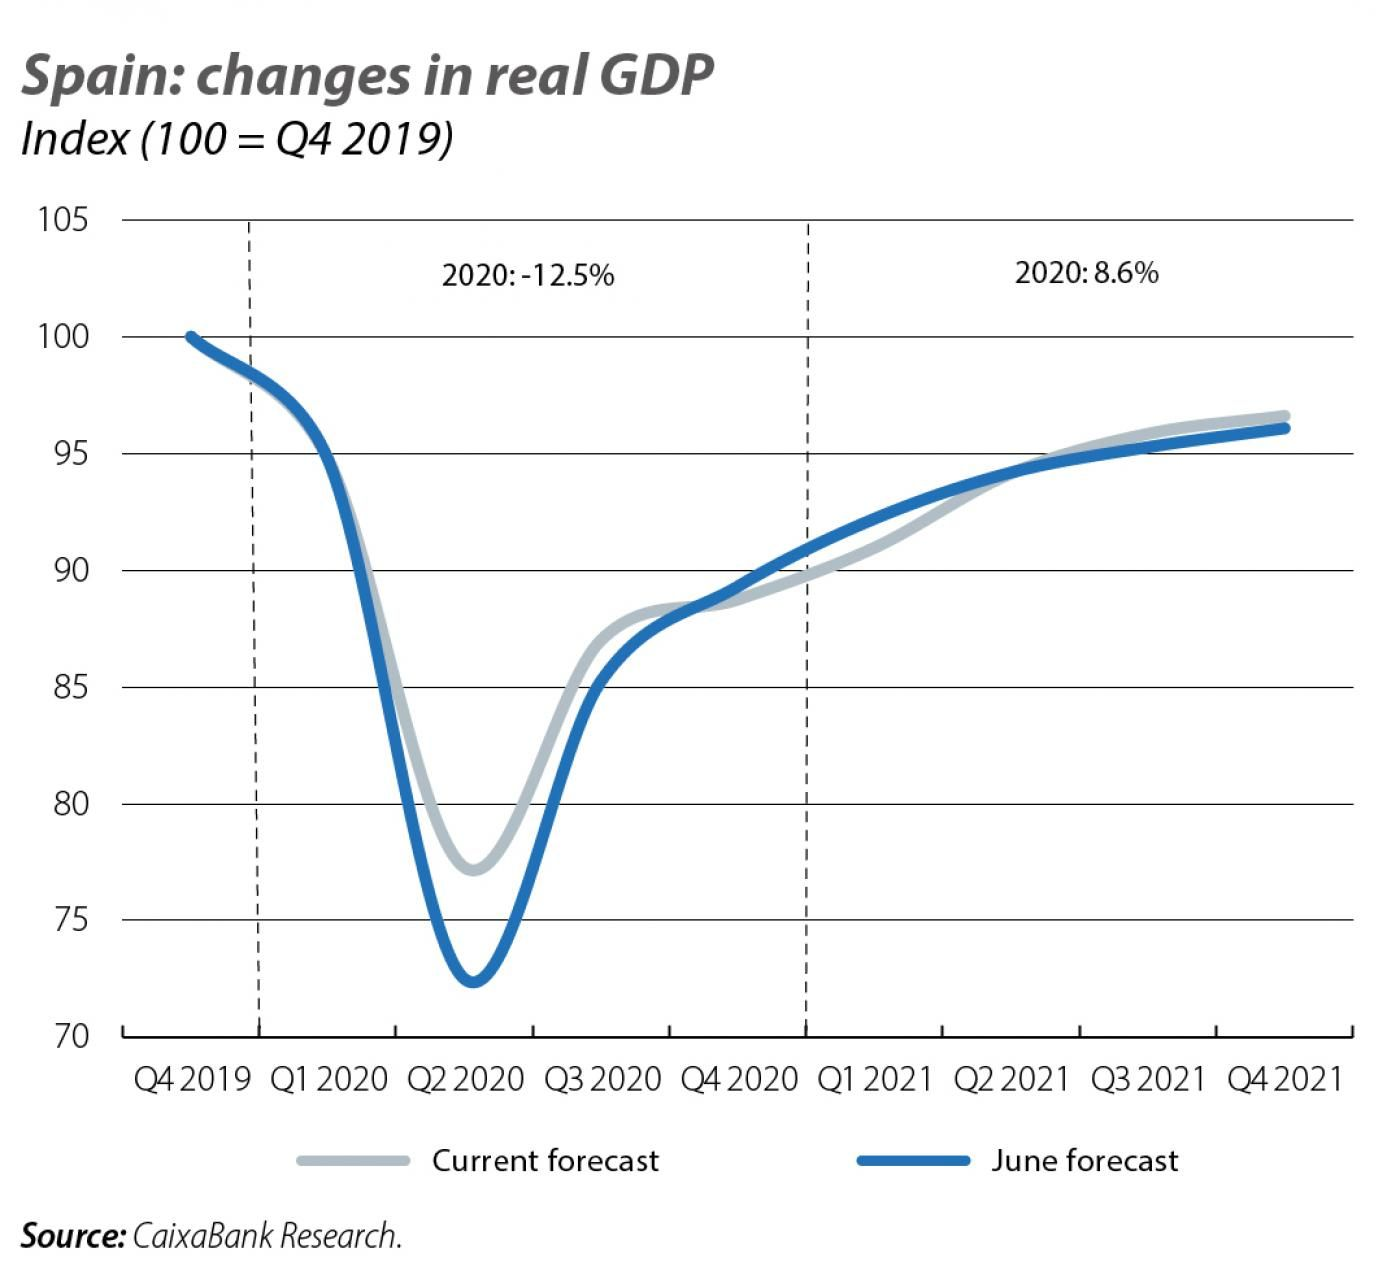 Spain: changes in real GDP